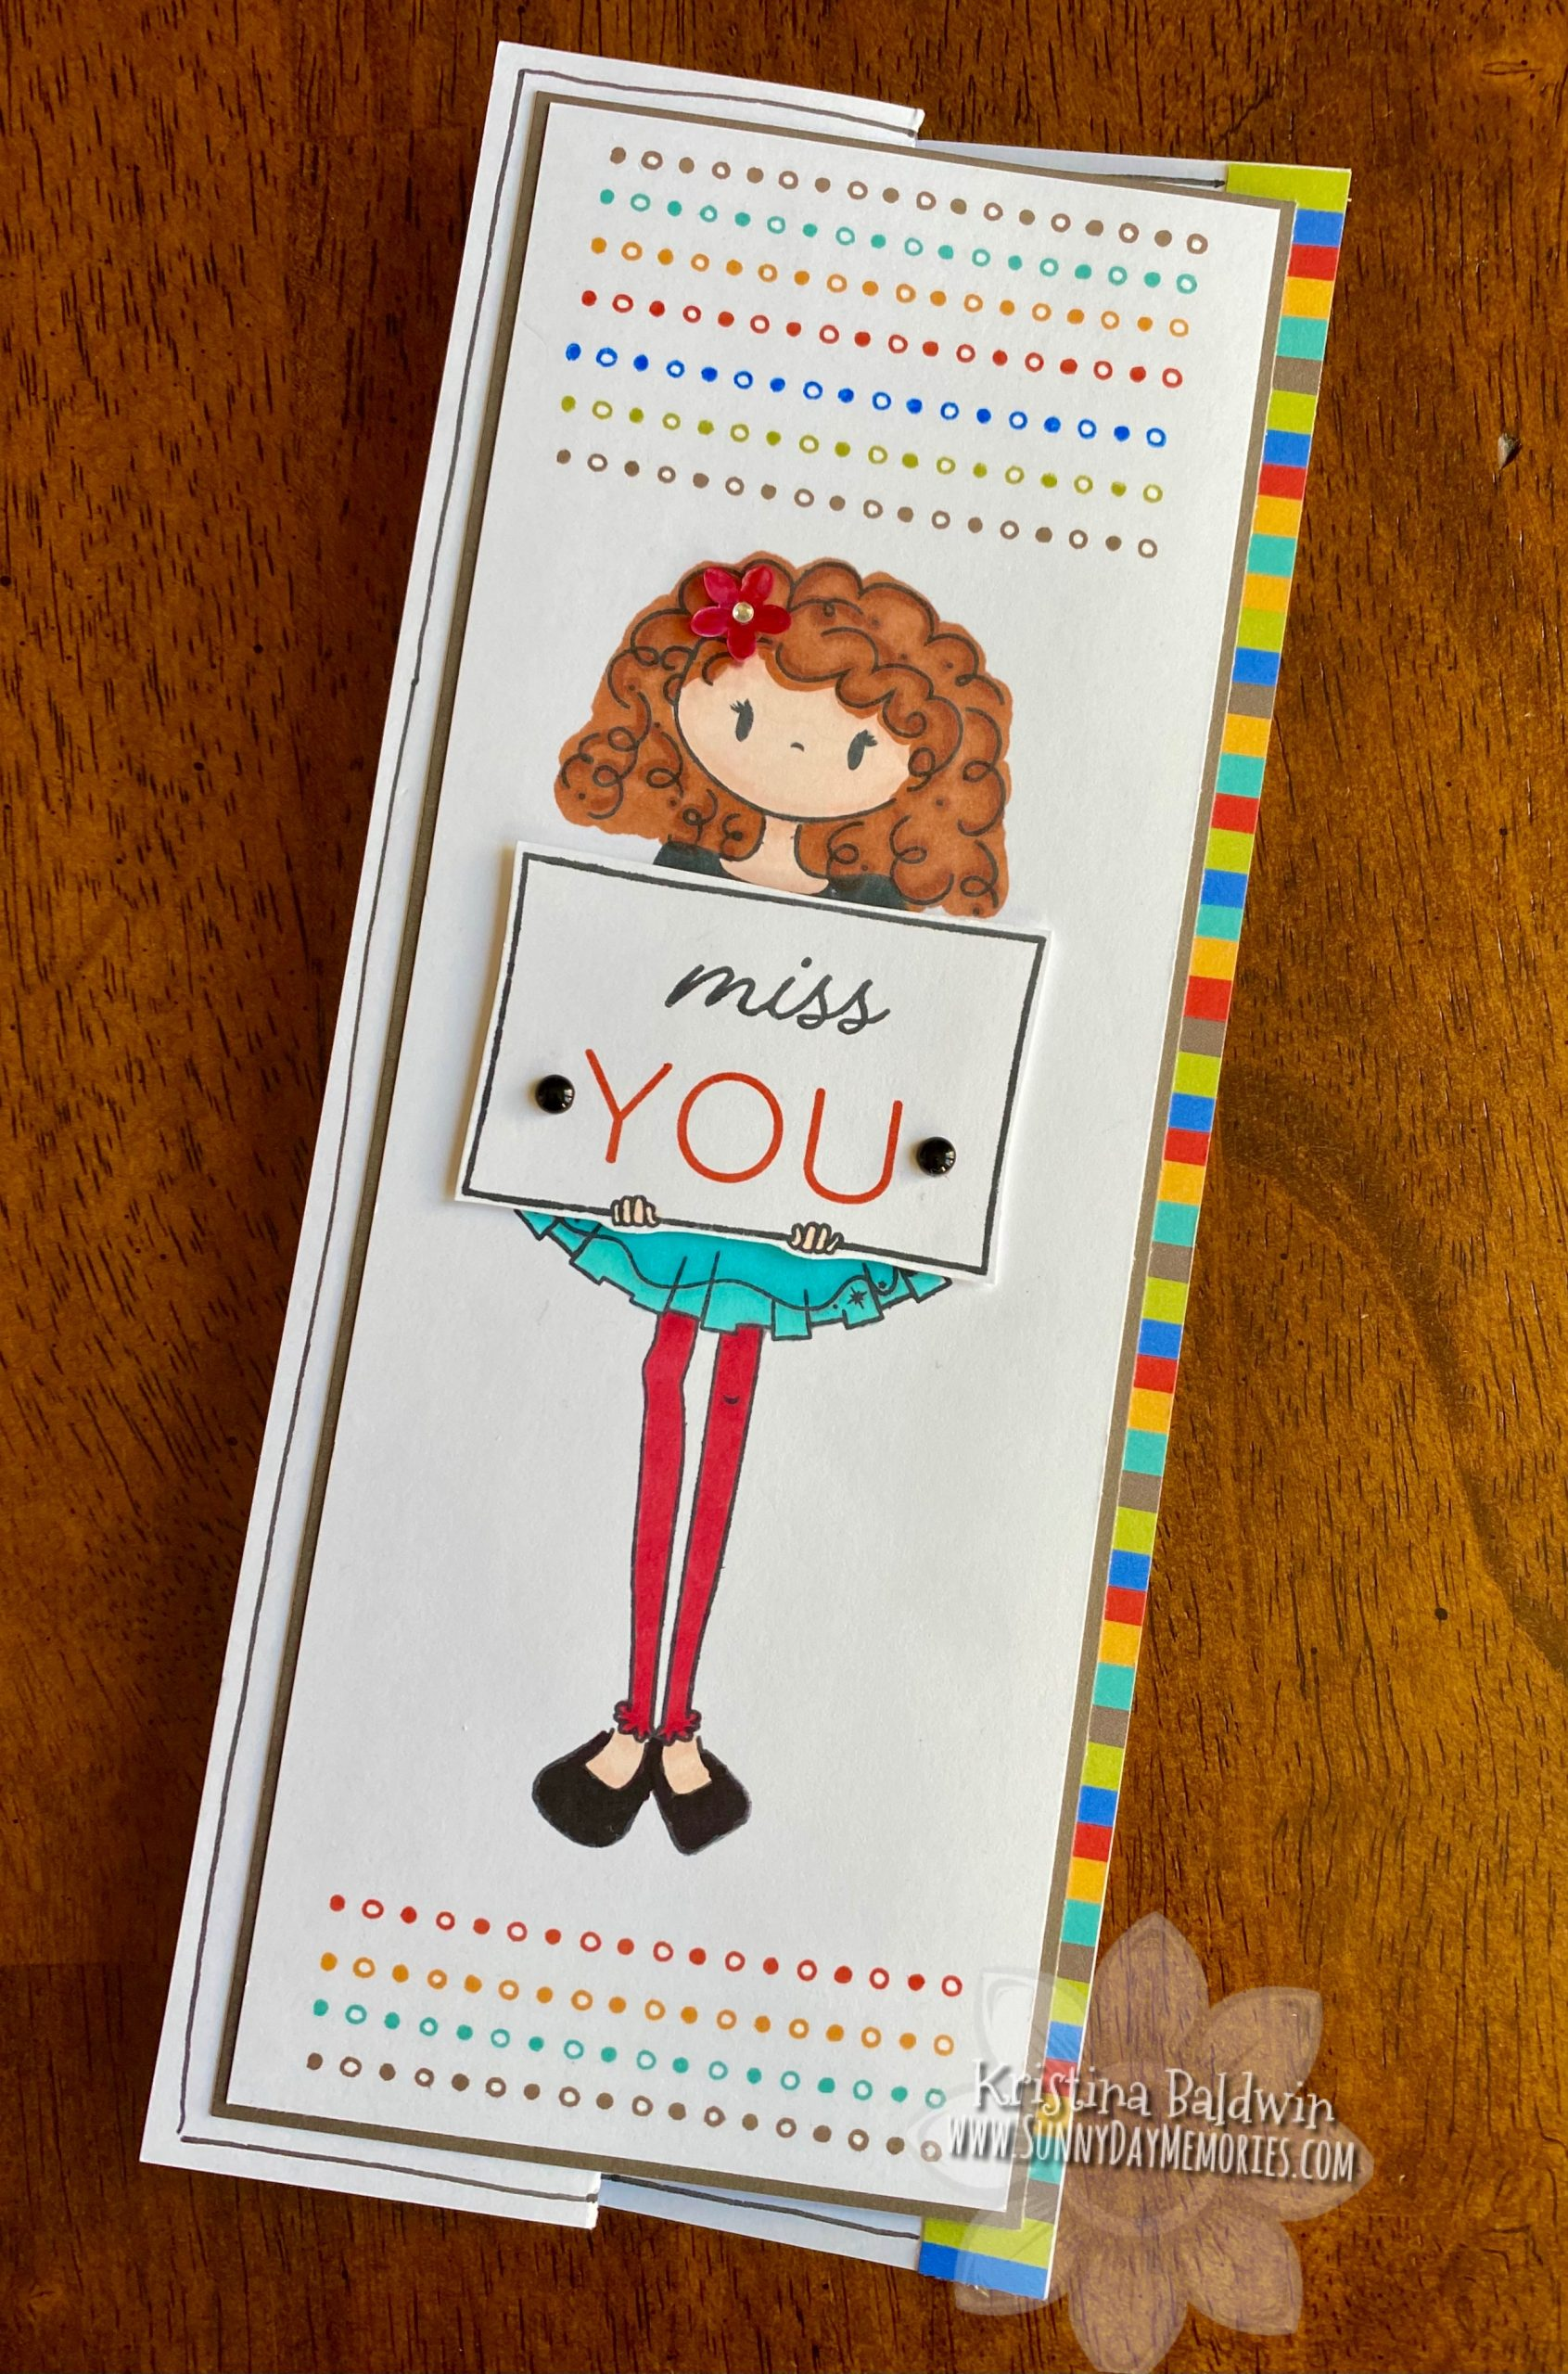 Doodled Borders Miss You Card